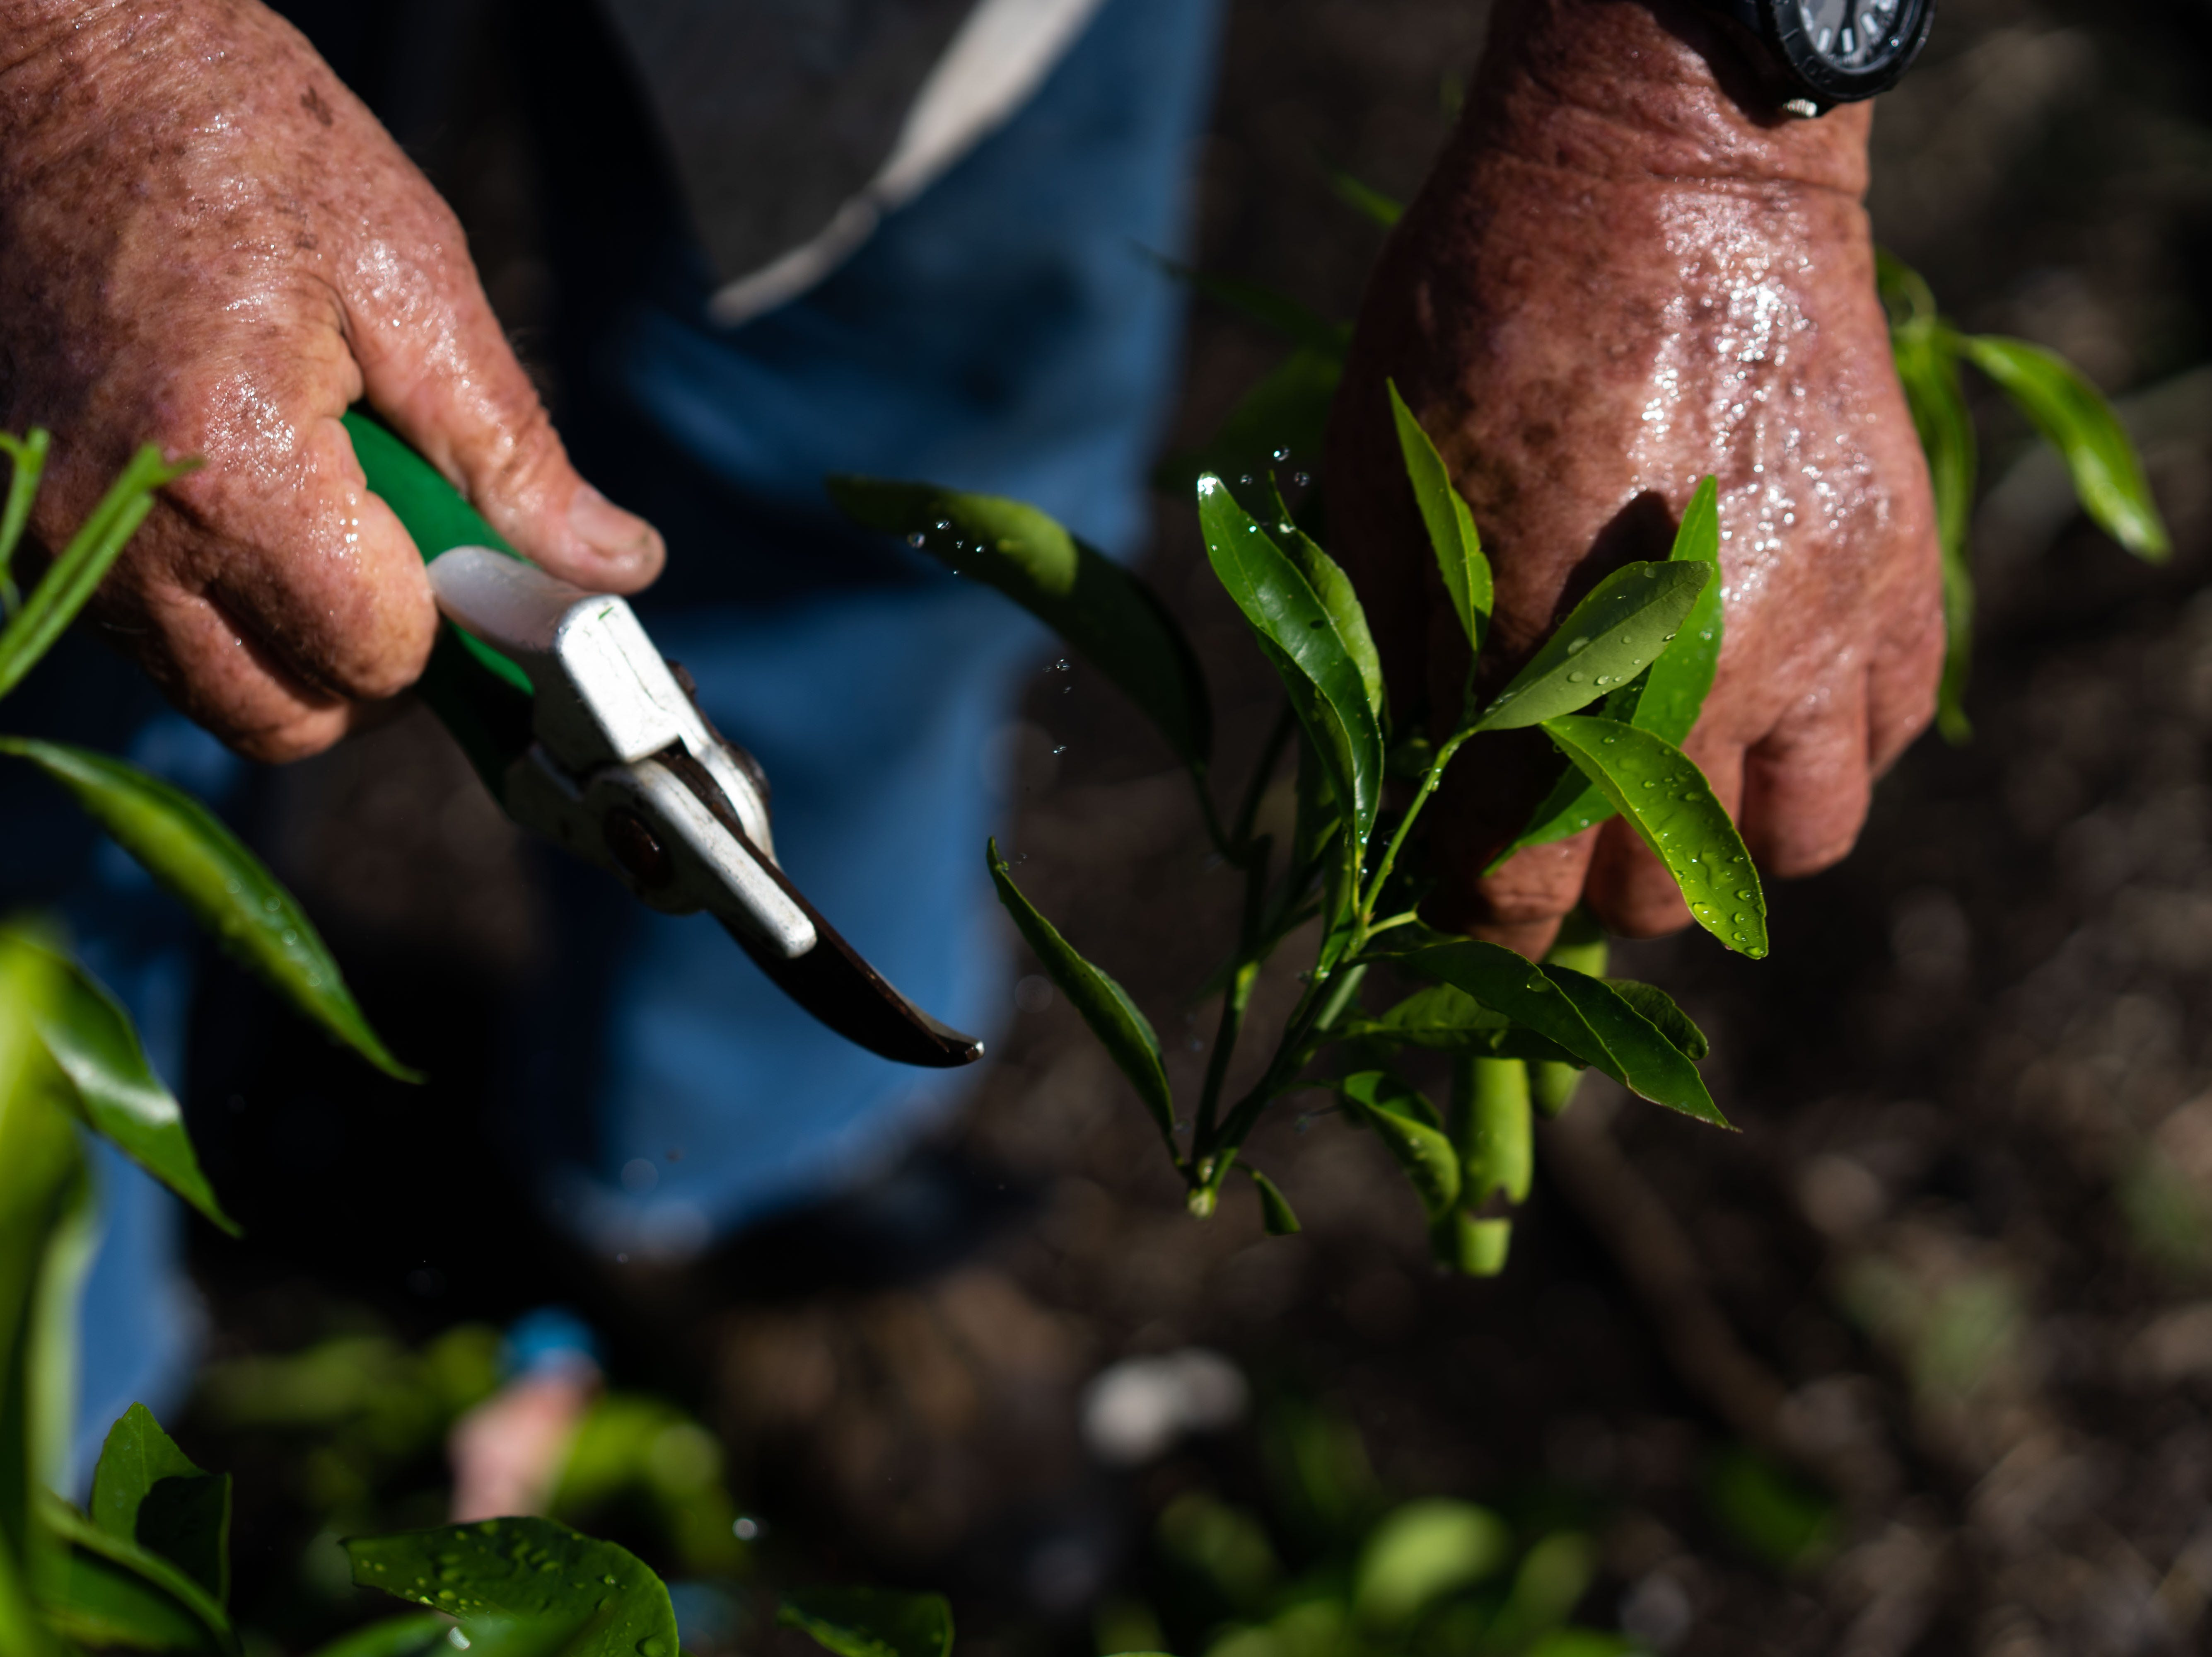 Martin Mason, the owner of Tropical Oaks Farms in LaBelle, snips the unruly branches of his young Sugar Belle tangerine saplings Tuesday morning on Spet.13,2018, to provide them with a round shape. Mason grows three types of tangerines and a type of grapefruit. Although Irma caused damage to his entire harvest, the Sugar Belle tangerines patch fell right in the way of Irma's eye.